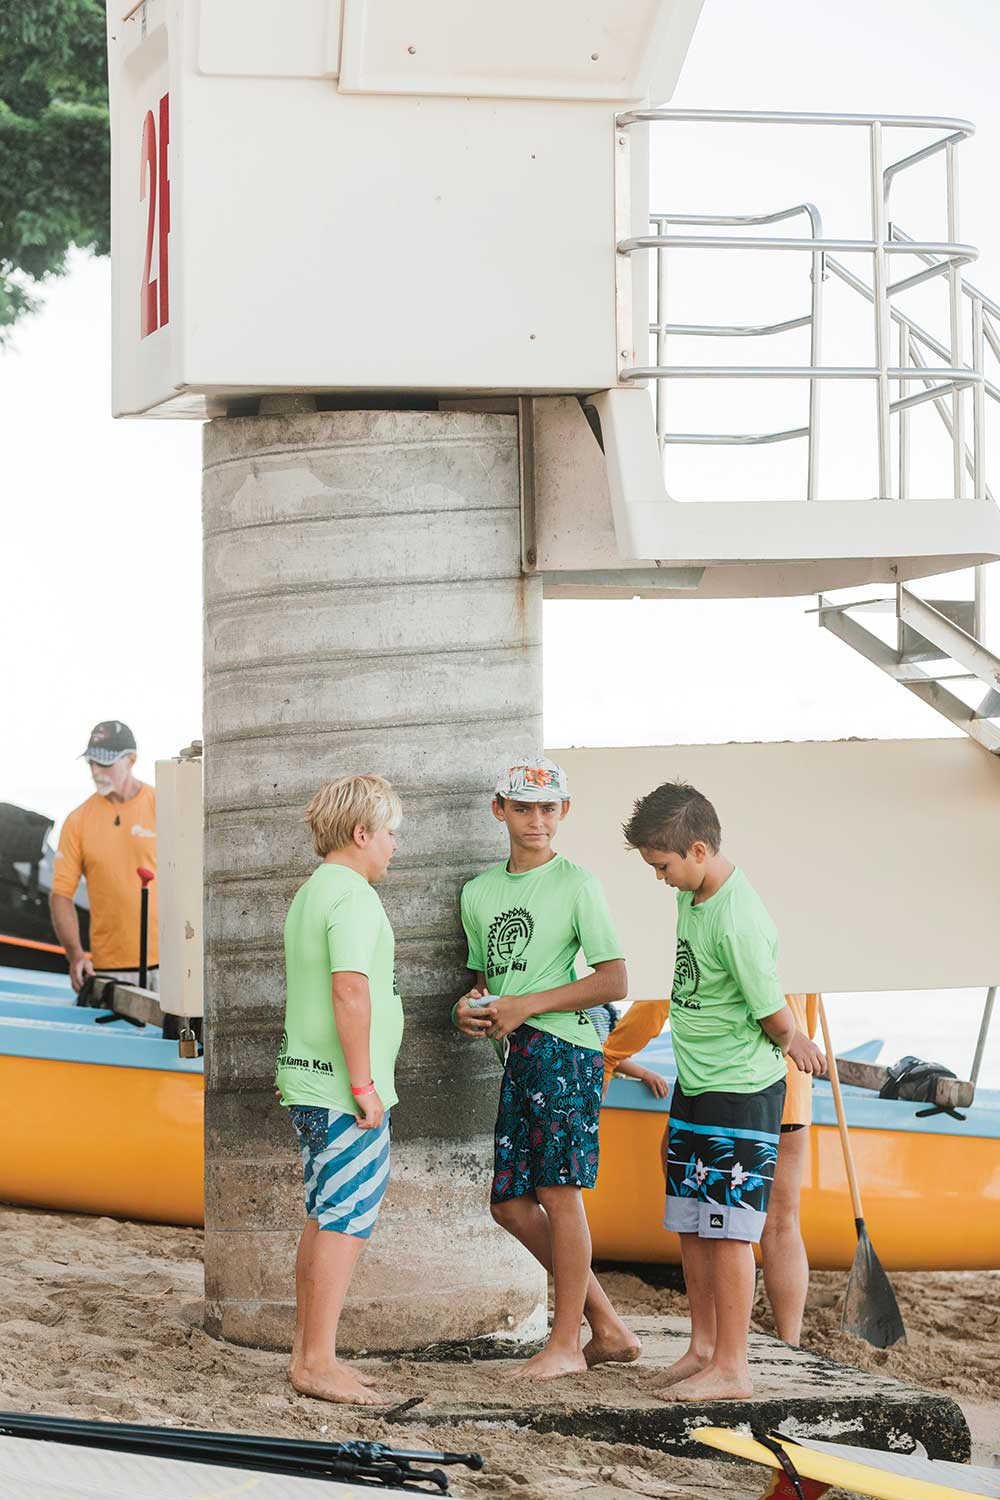 Three little boys in green shirts and board shorts stand by a life guard station